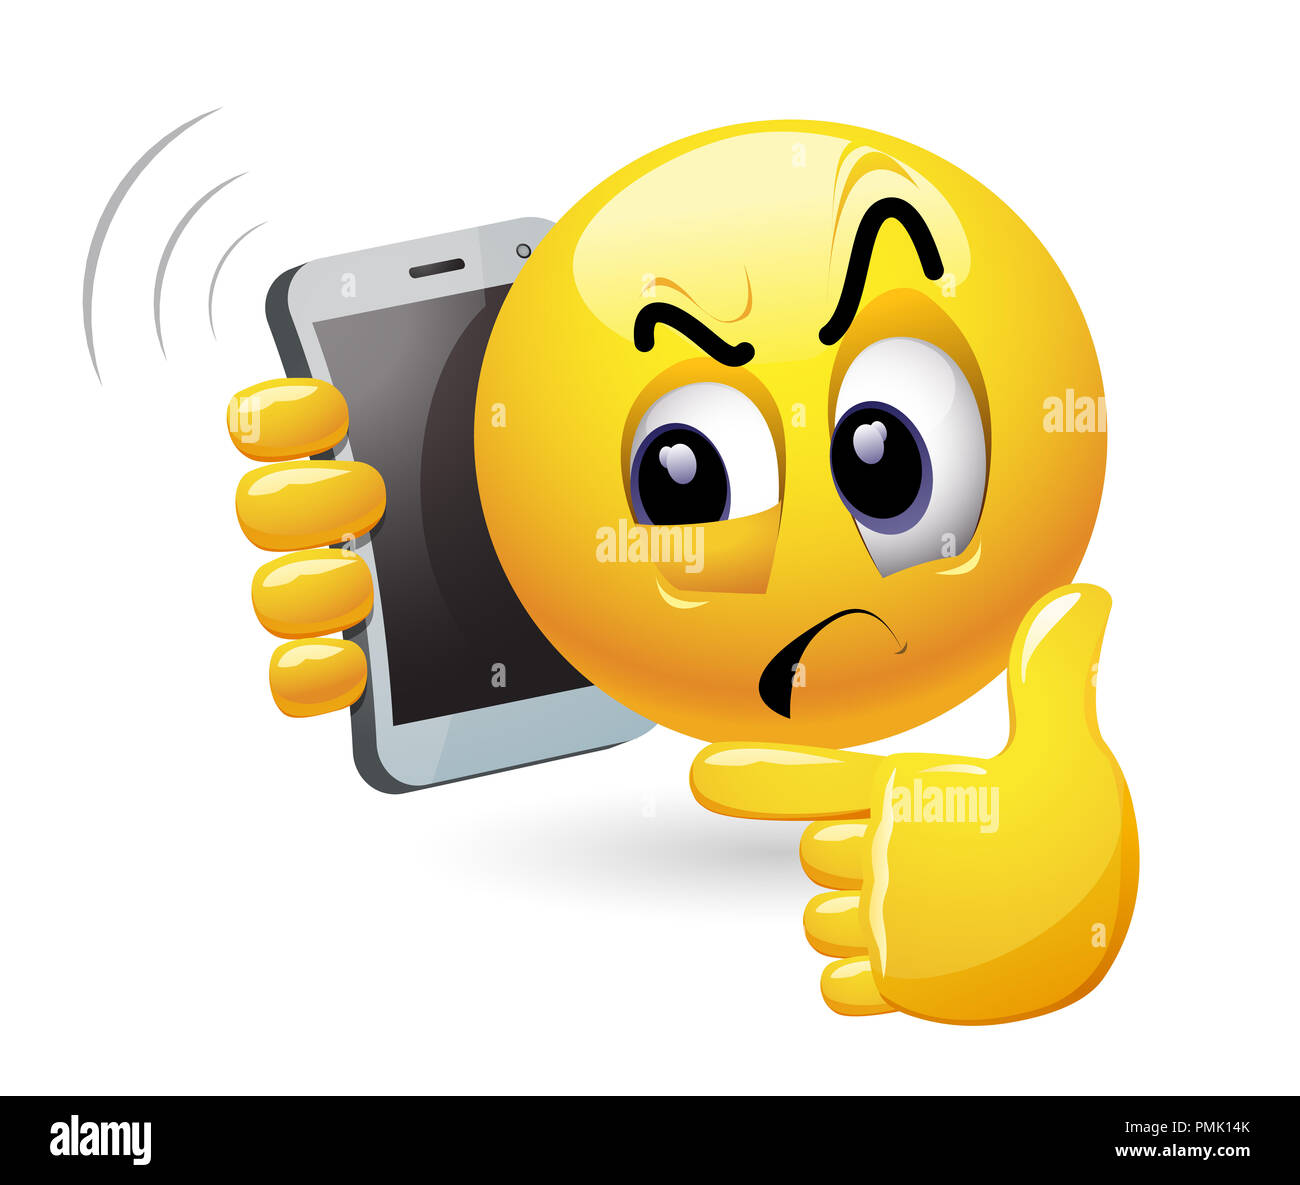 Smiley talking on a phone. Vector illustration of a smiley being distrustful while having phone conversation. - Stock Image